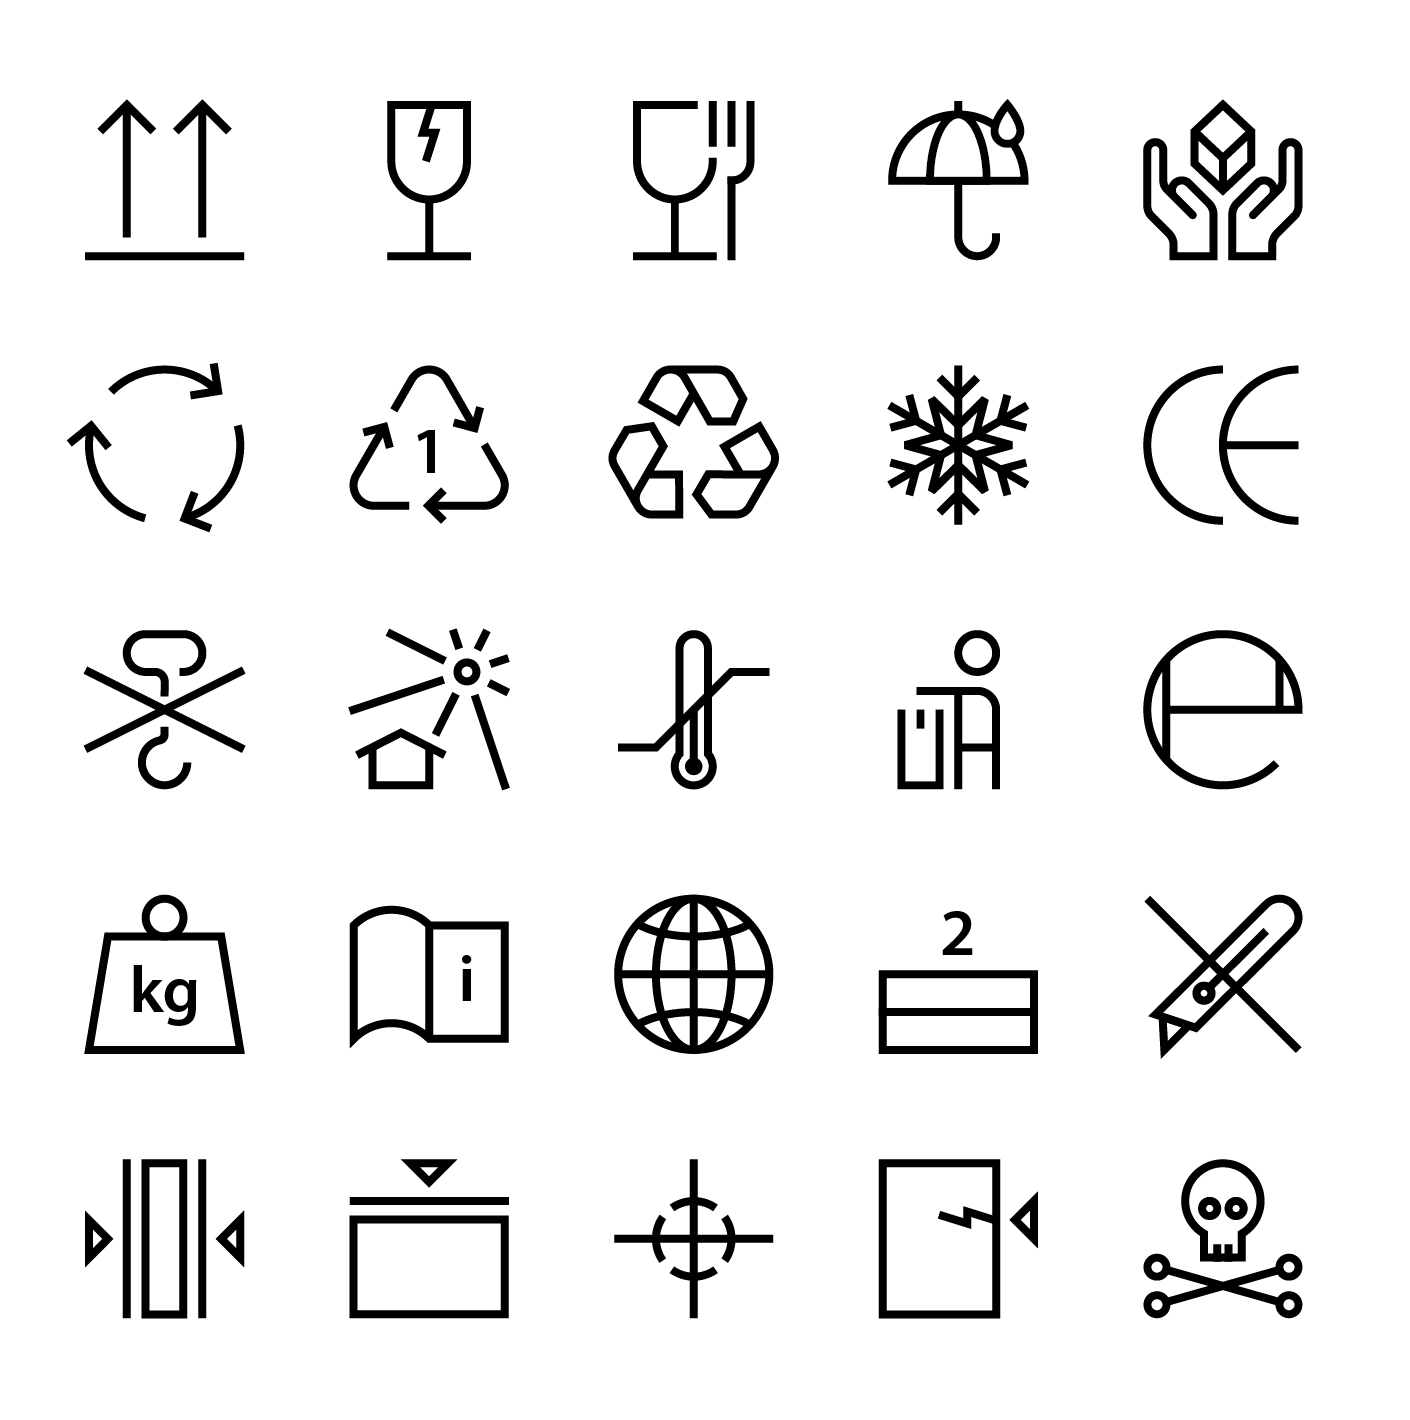 Free Freight And Postage Symbols